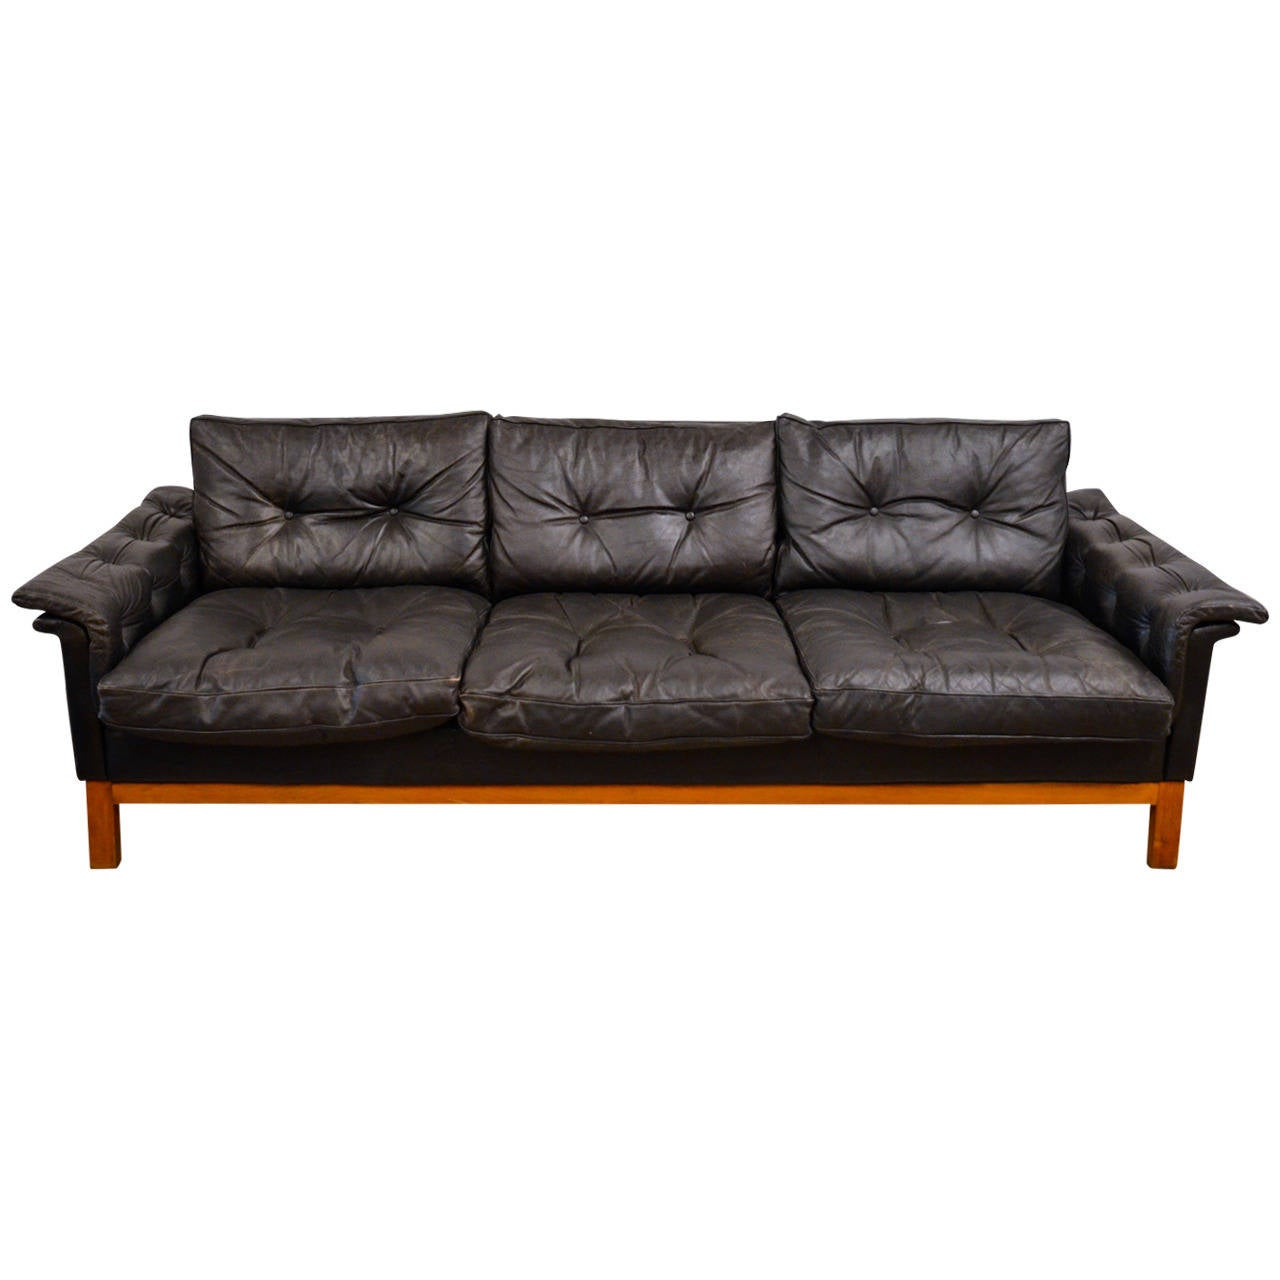 mid century black tufted leather sofa danish at 1stdibs. Black Bedroom Furniture Sets. Home Design Ideas